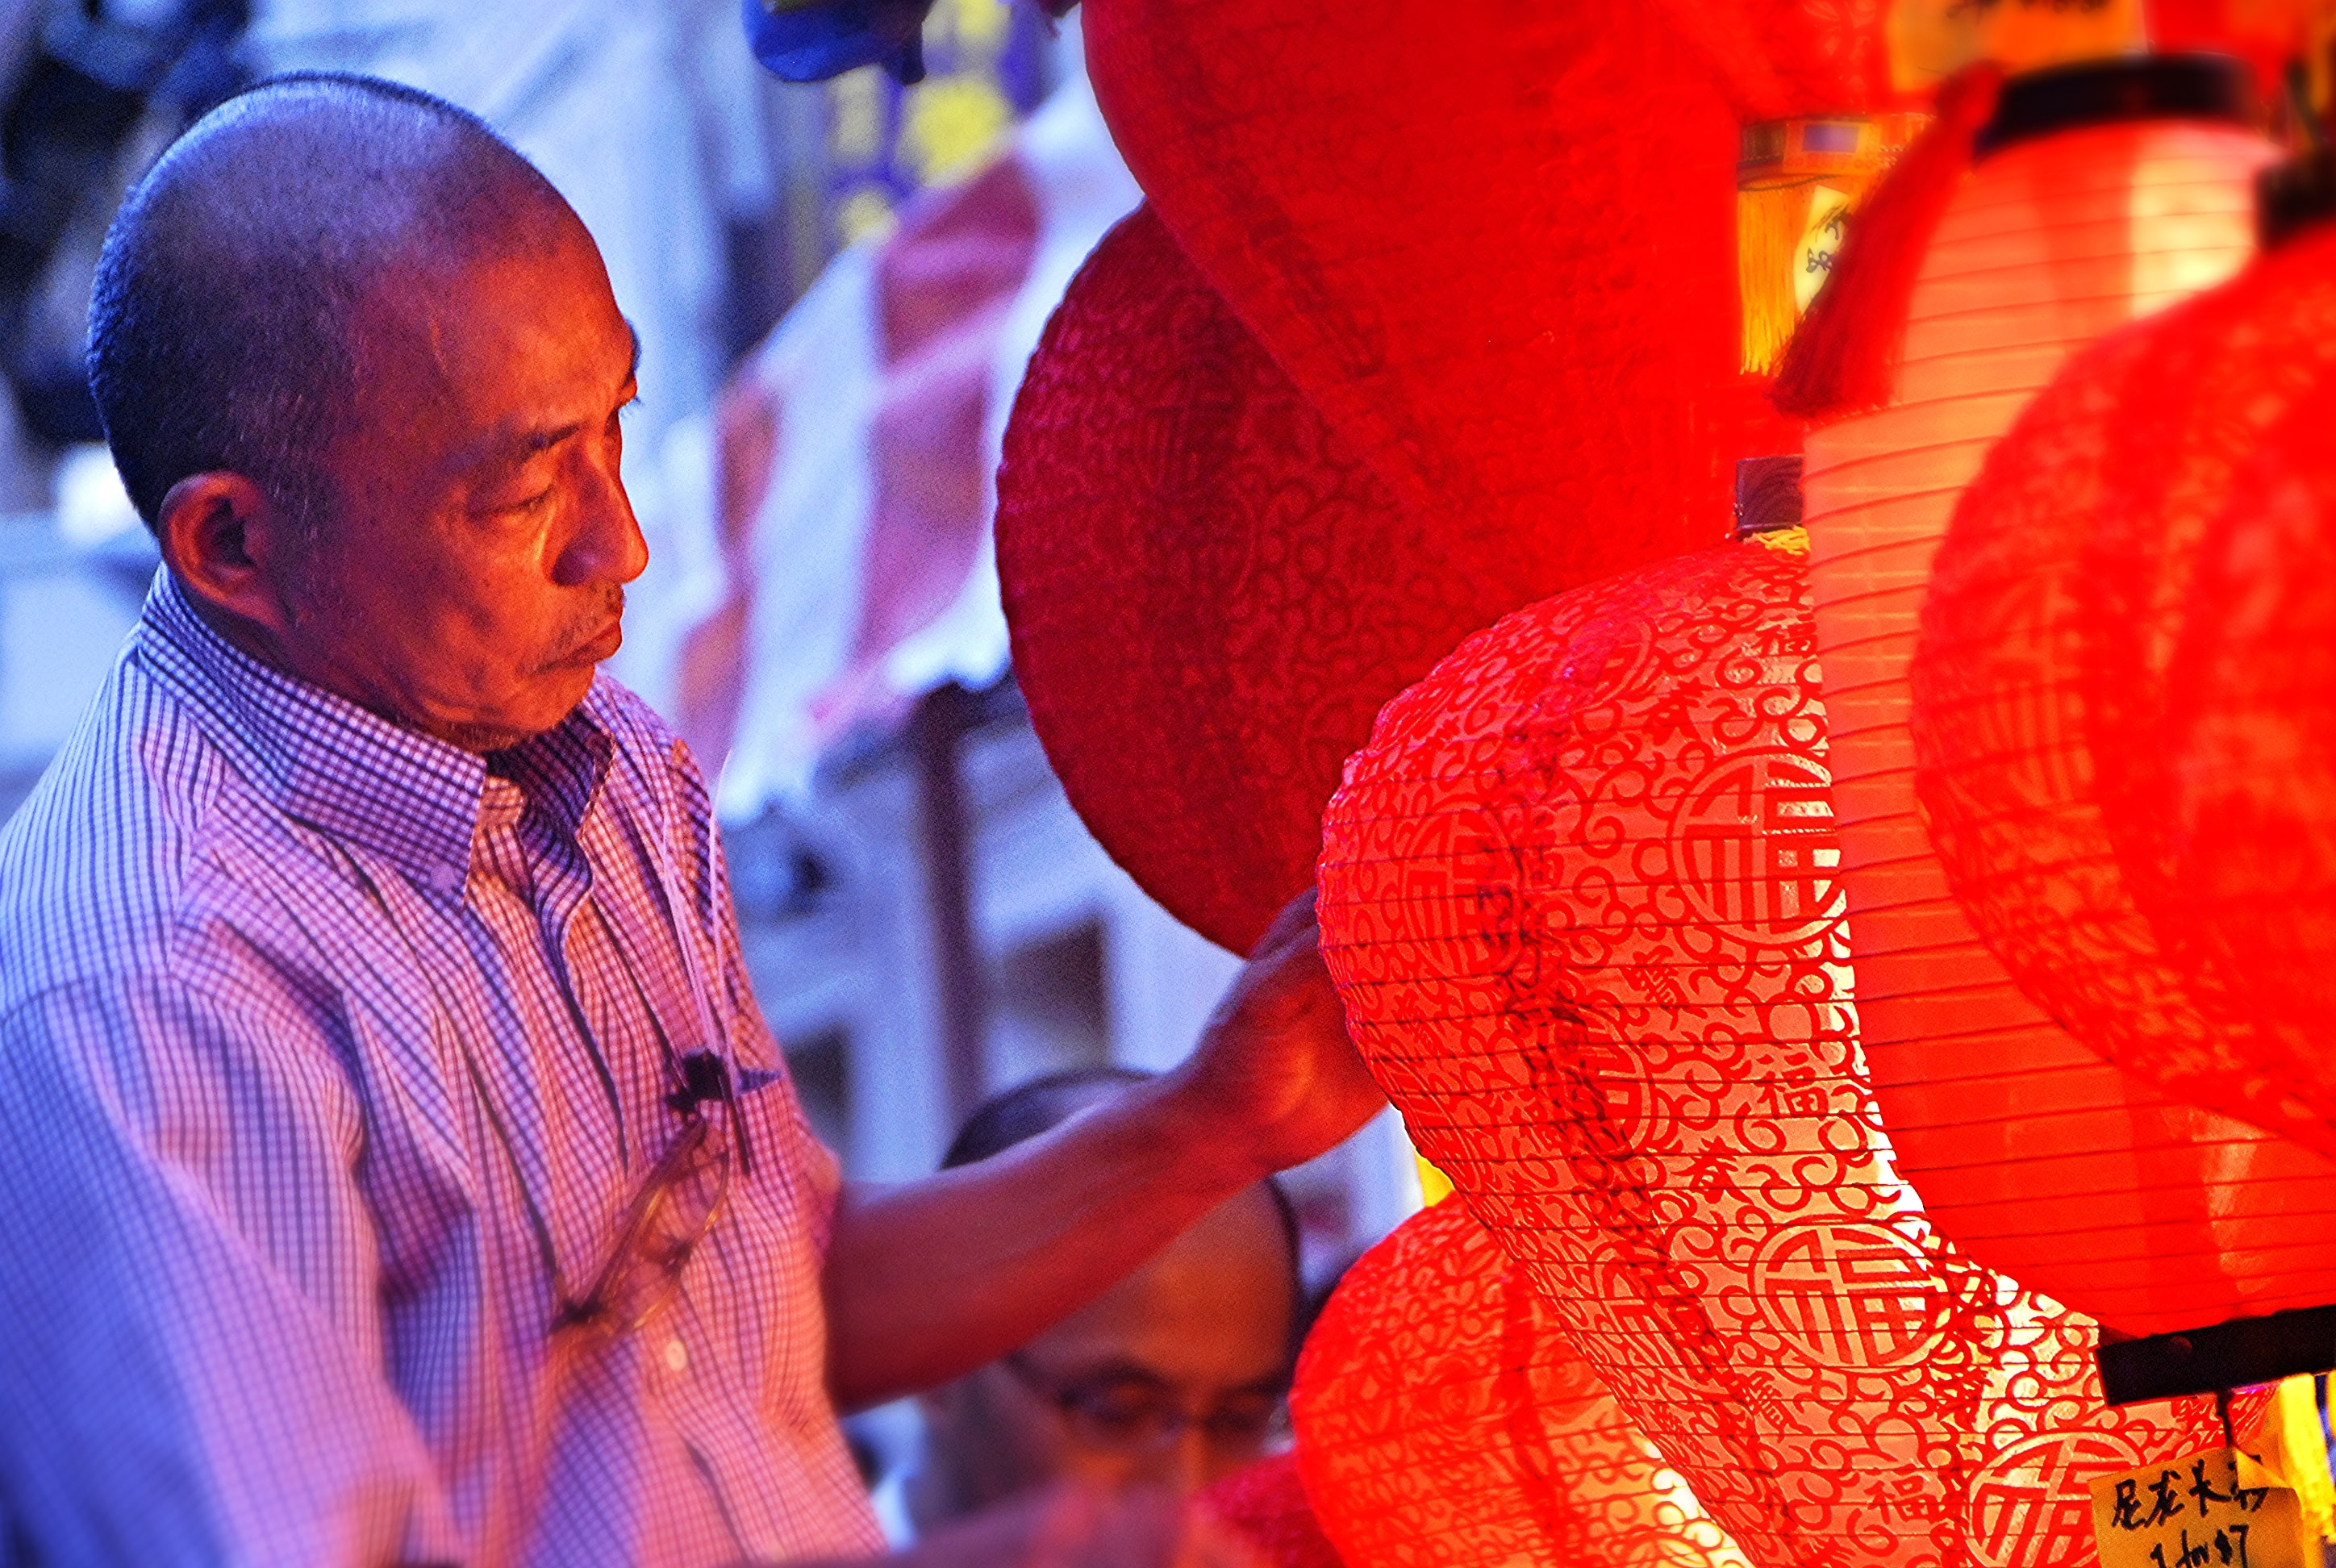 man holding red lanterns at daytime